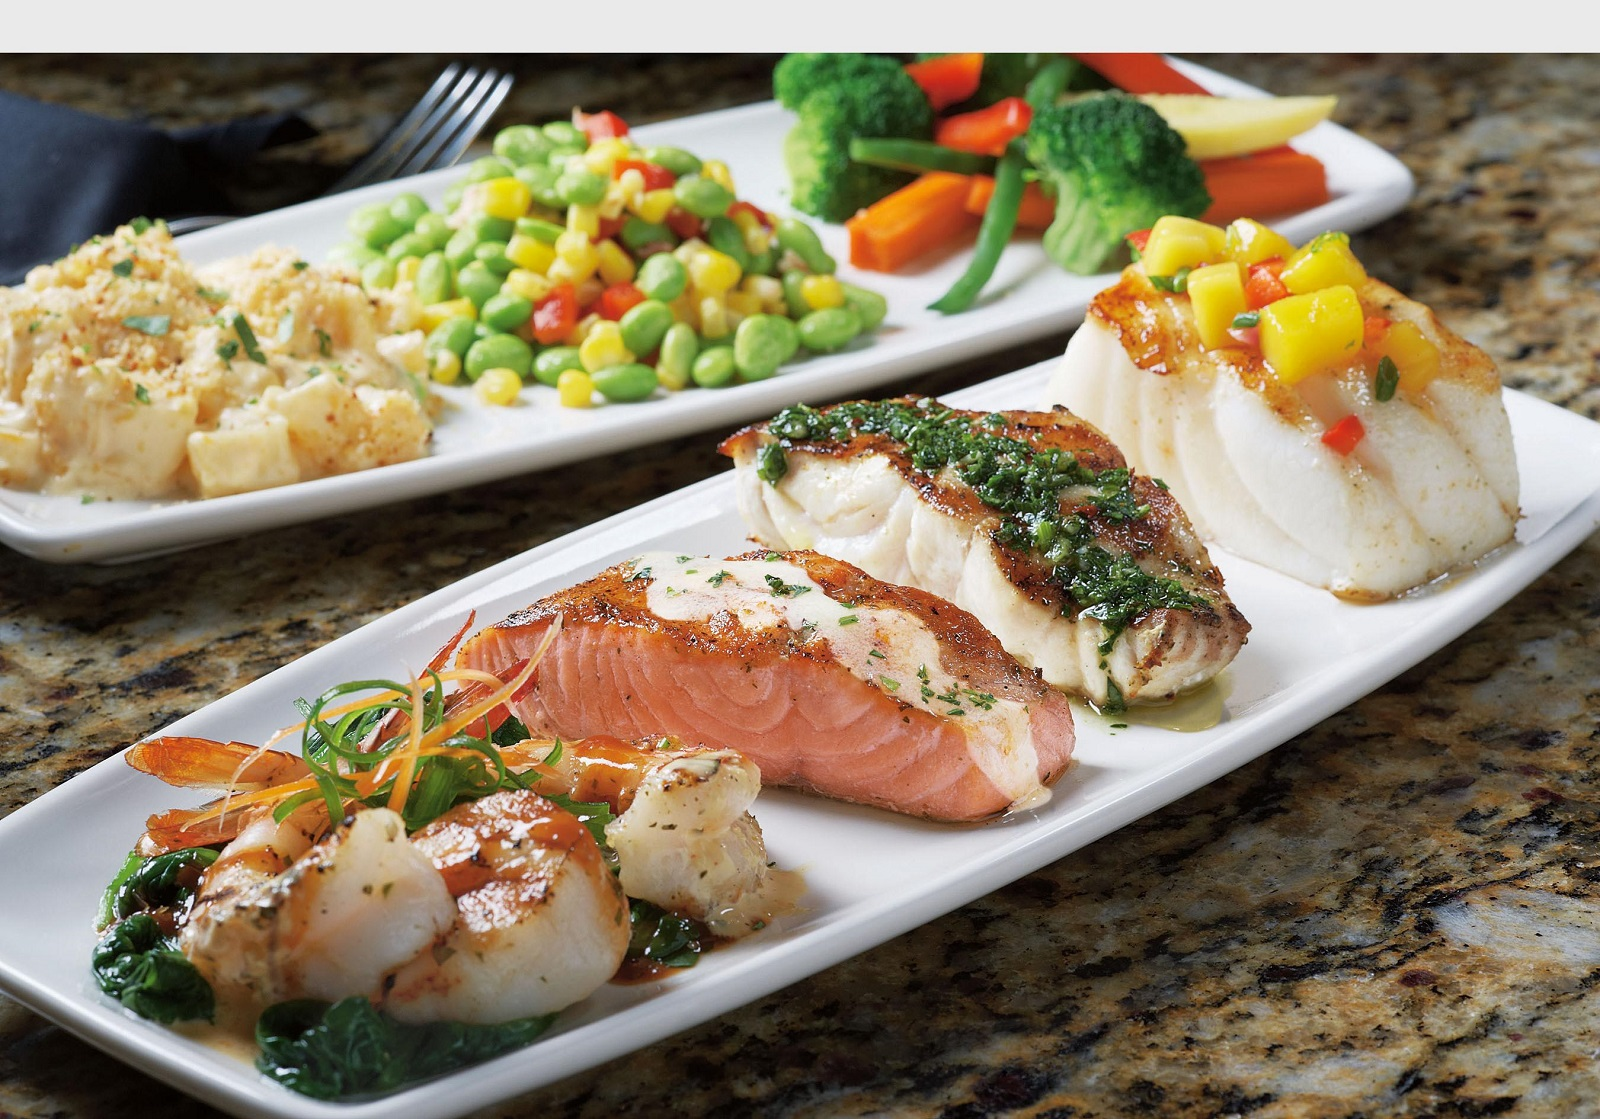 Bonefish Grill and Lombardo Ristorante will give 20 percent of their proceeds to Headway of WNY on Wednesday and Thursday.